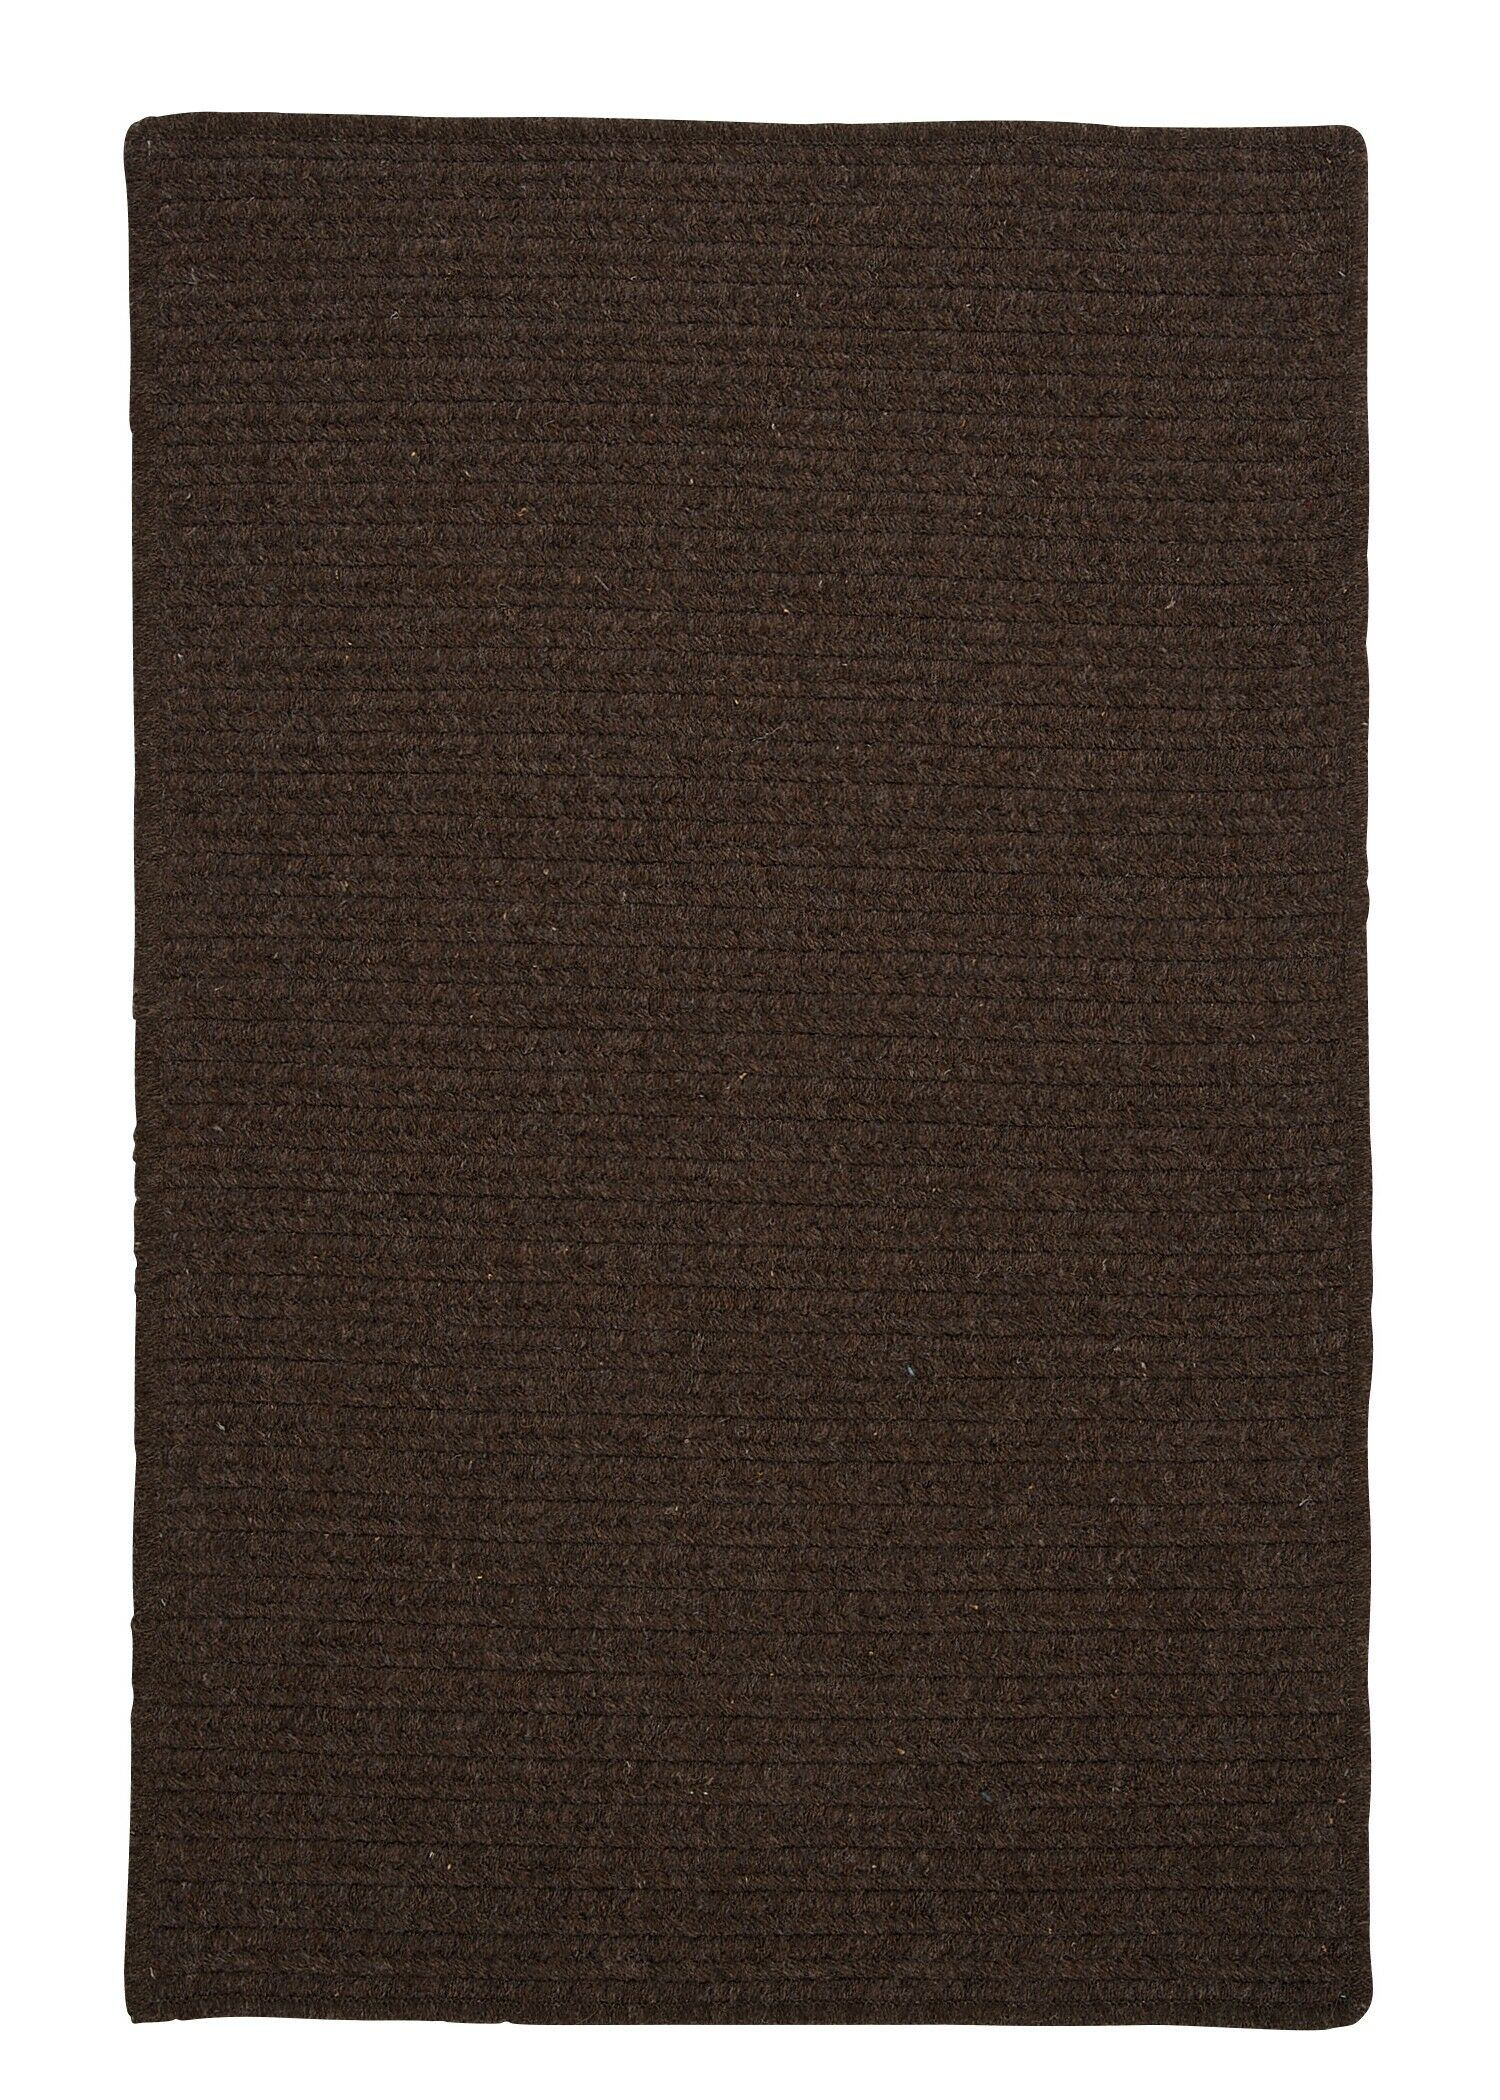 Courtyard Cocoa Rug Fringe: Not Included, Rug Size: Runner 2' x 6'